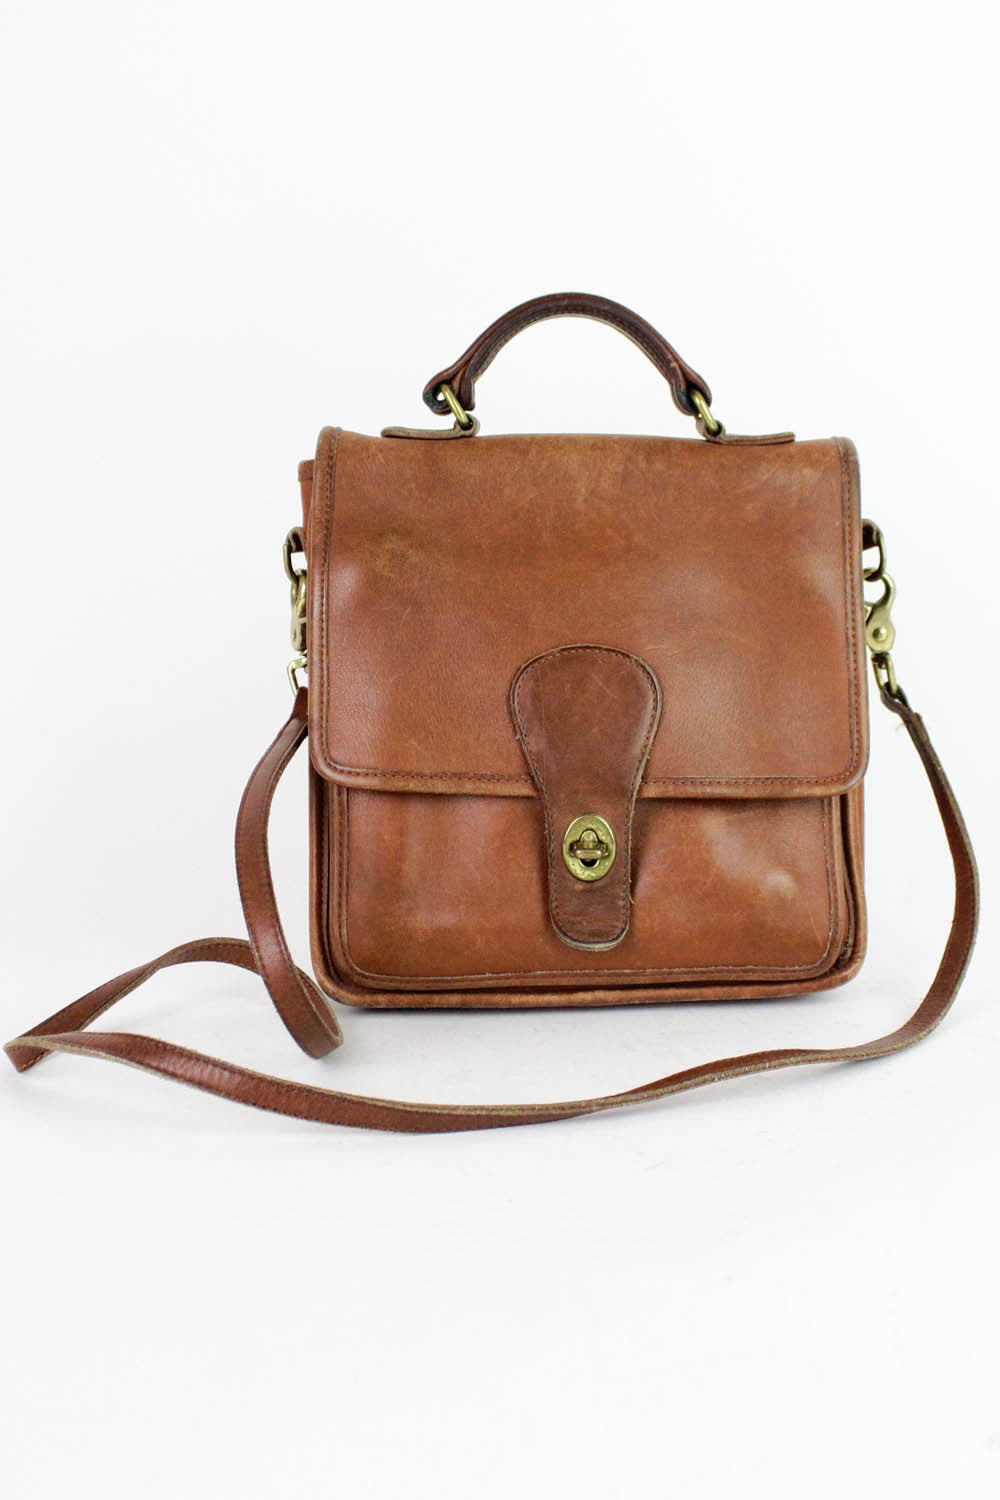 vintage coach brown leather station bag